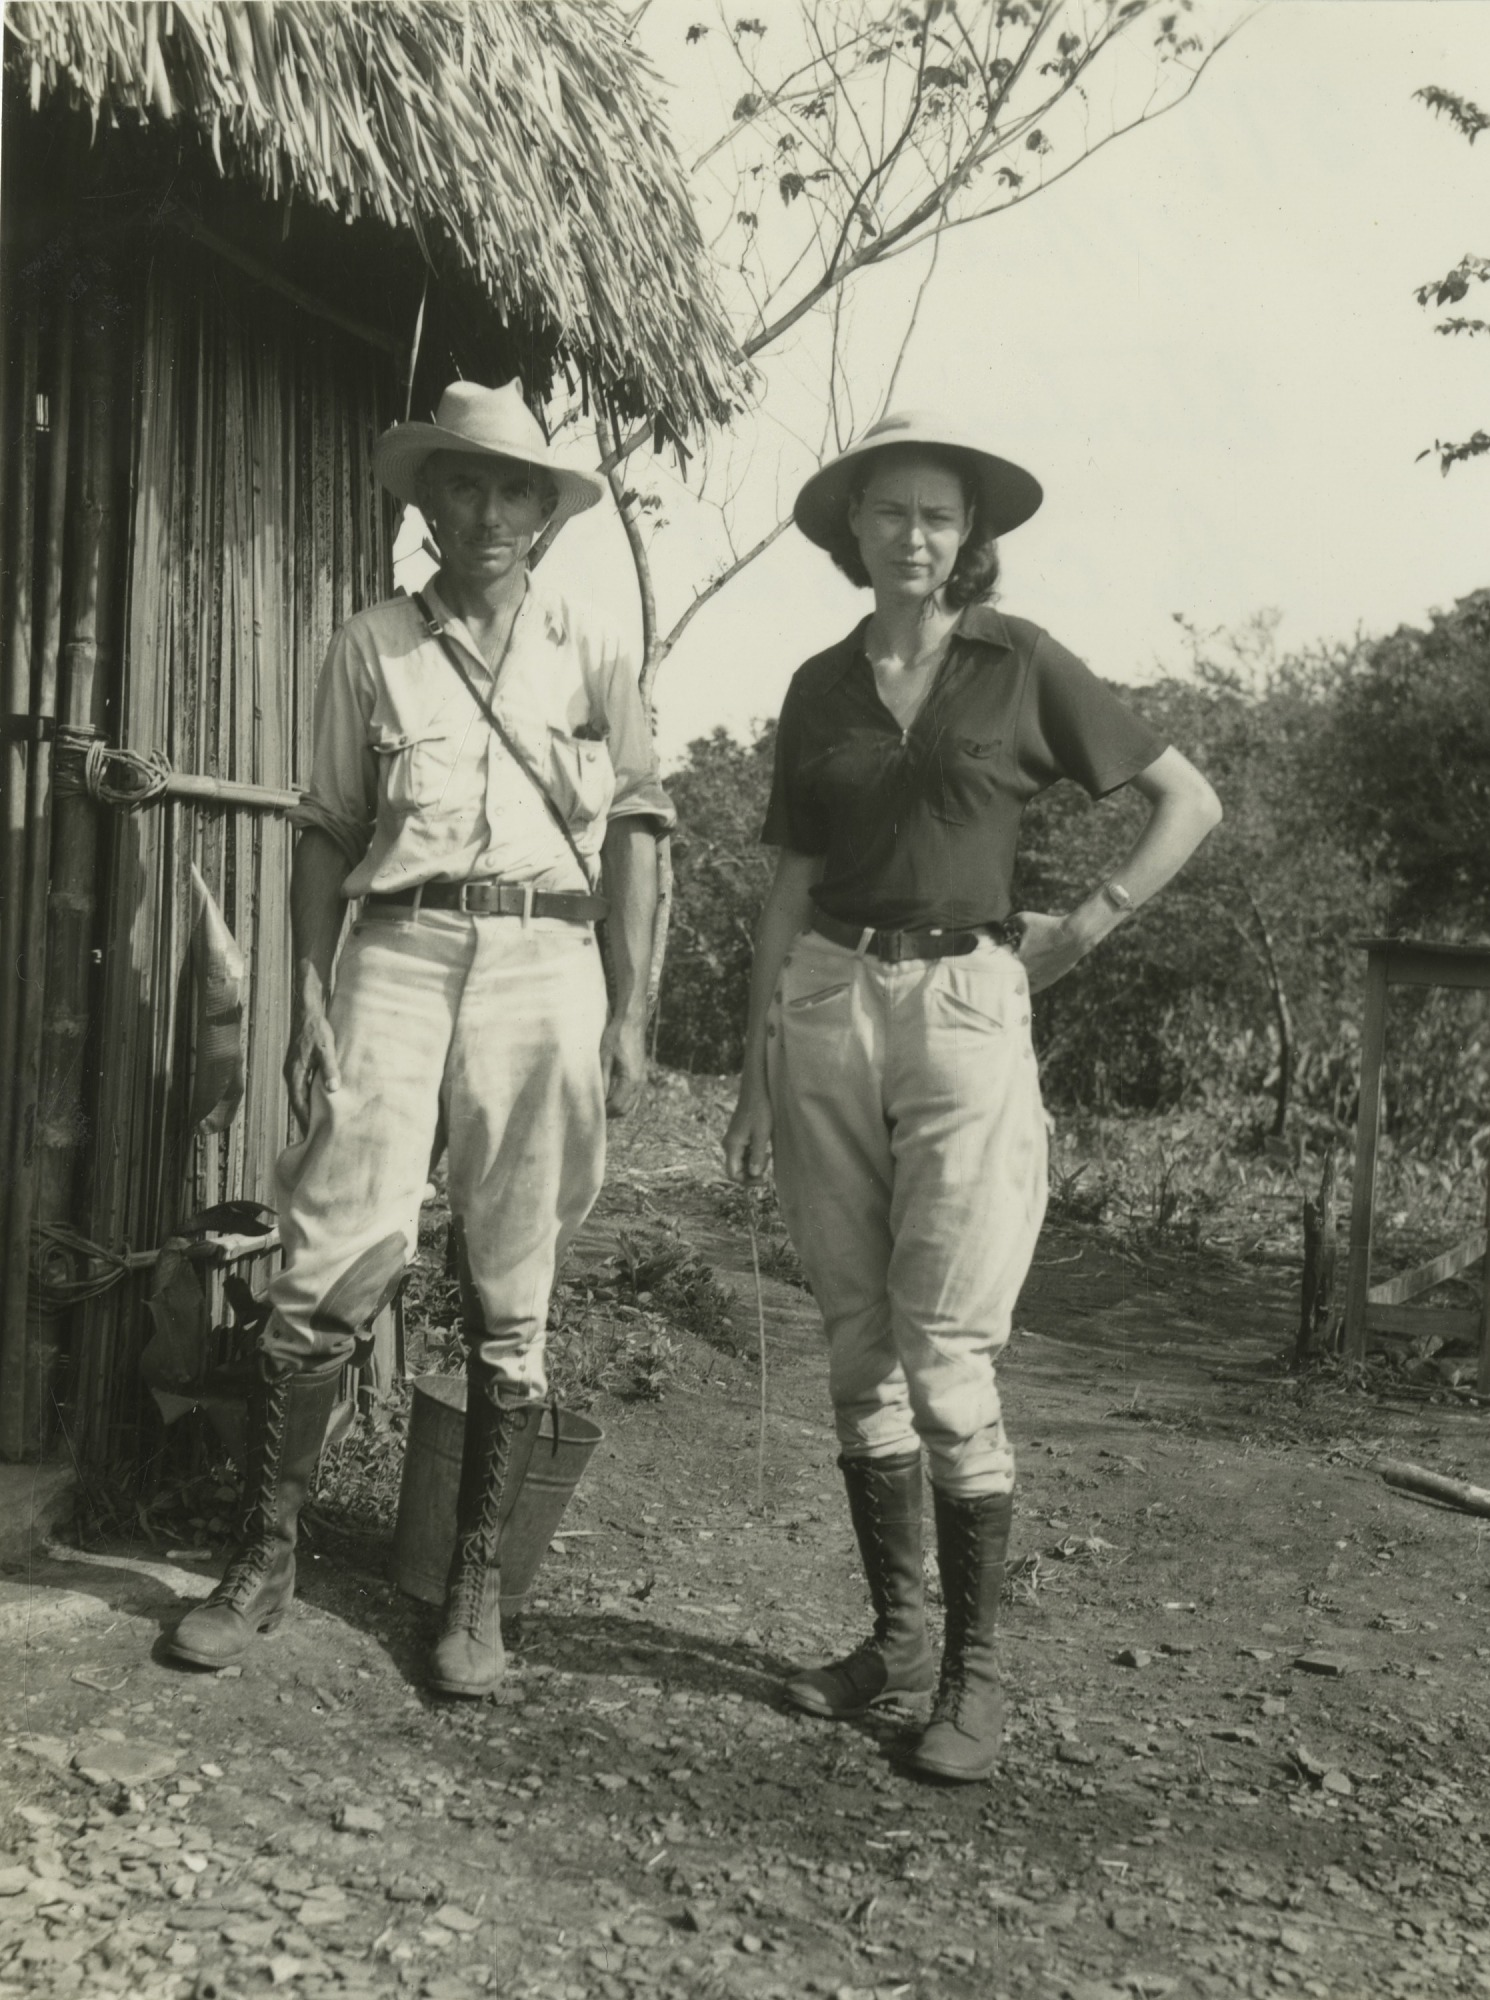 Preview of Matthew and Marion Stirling in Camp at Tres Zapotes, Veracruz, Mexico